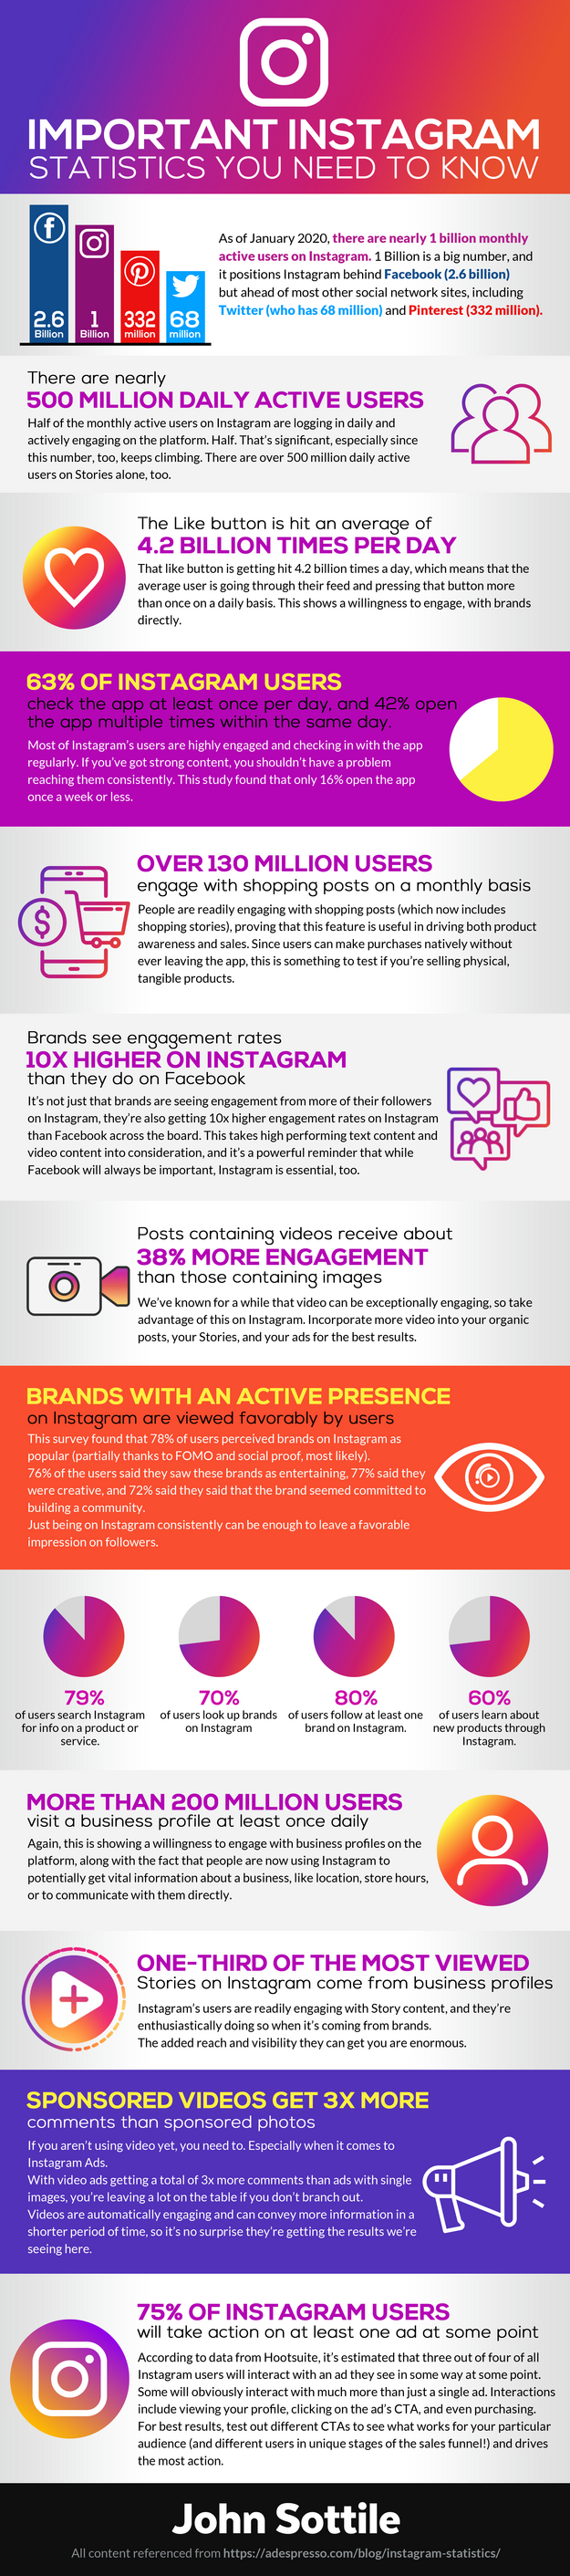 Important Instagram Statistics You Need To Know